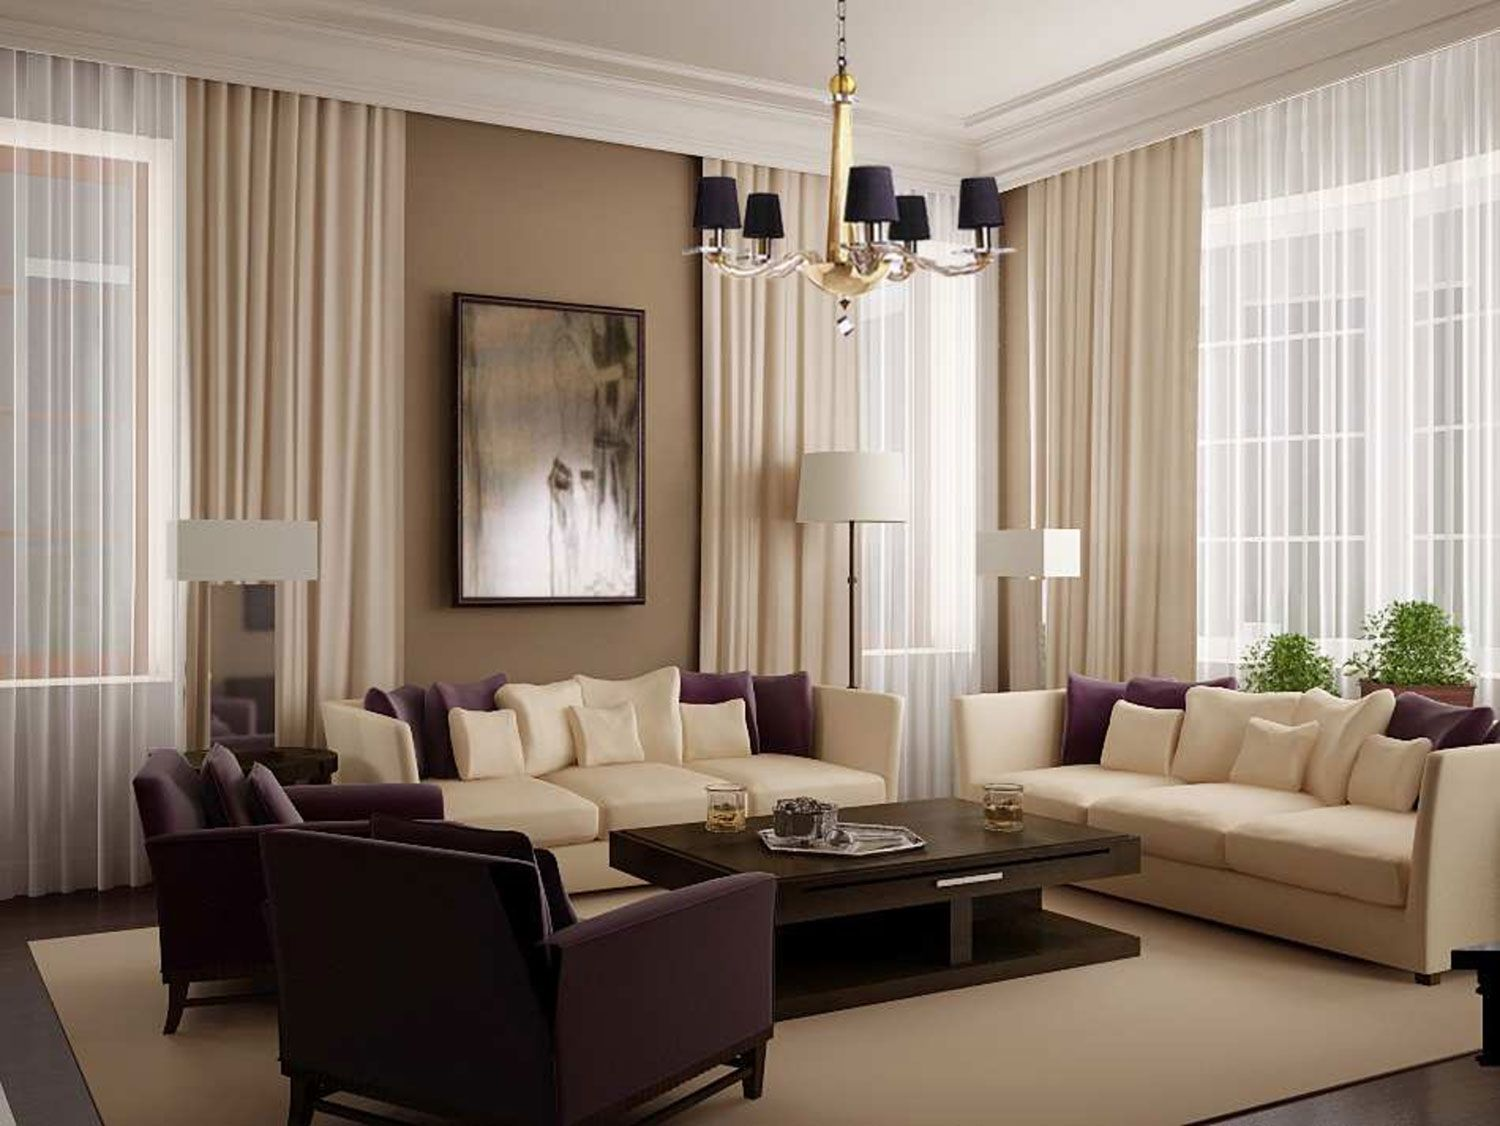 Amusing White Living Room Curtains With Cream And Dark Brown Sofa And Glass  Table On The Part 25